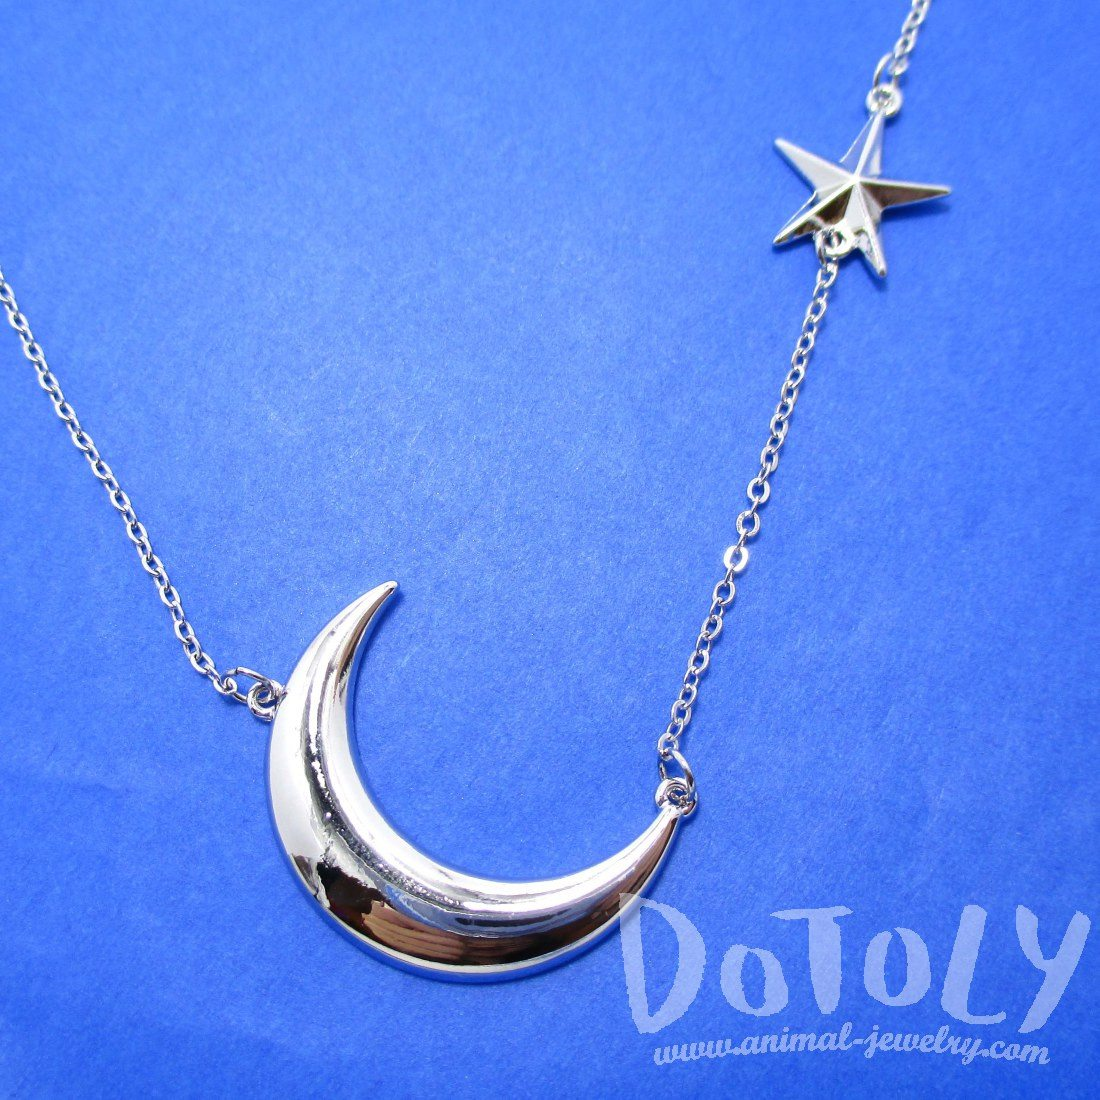 Celestrial Crescent Moon and Stars Necklace in Silver